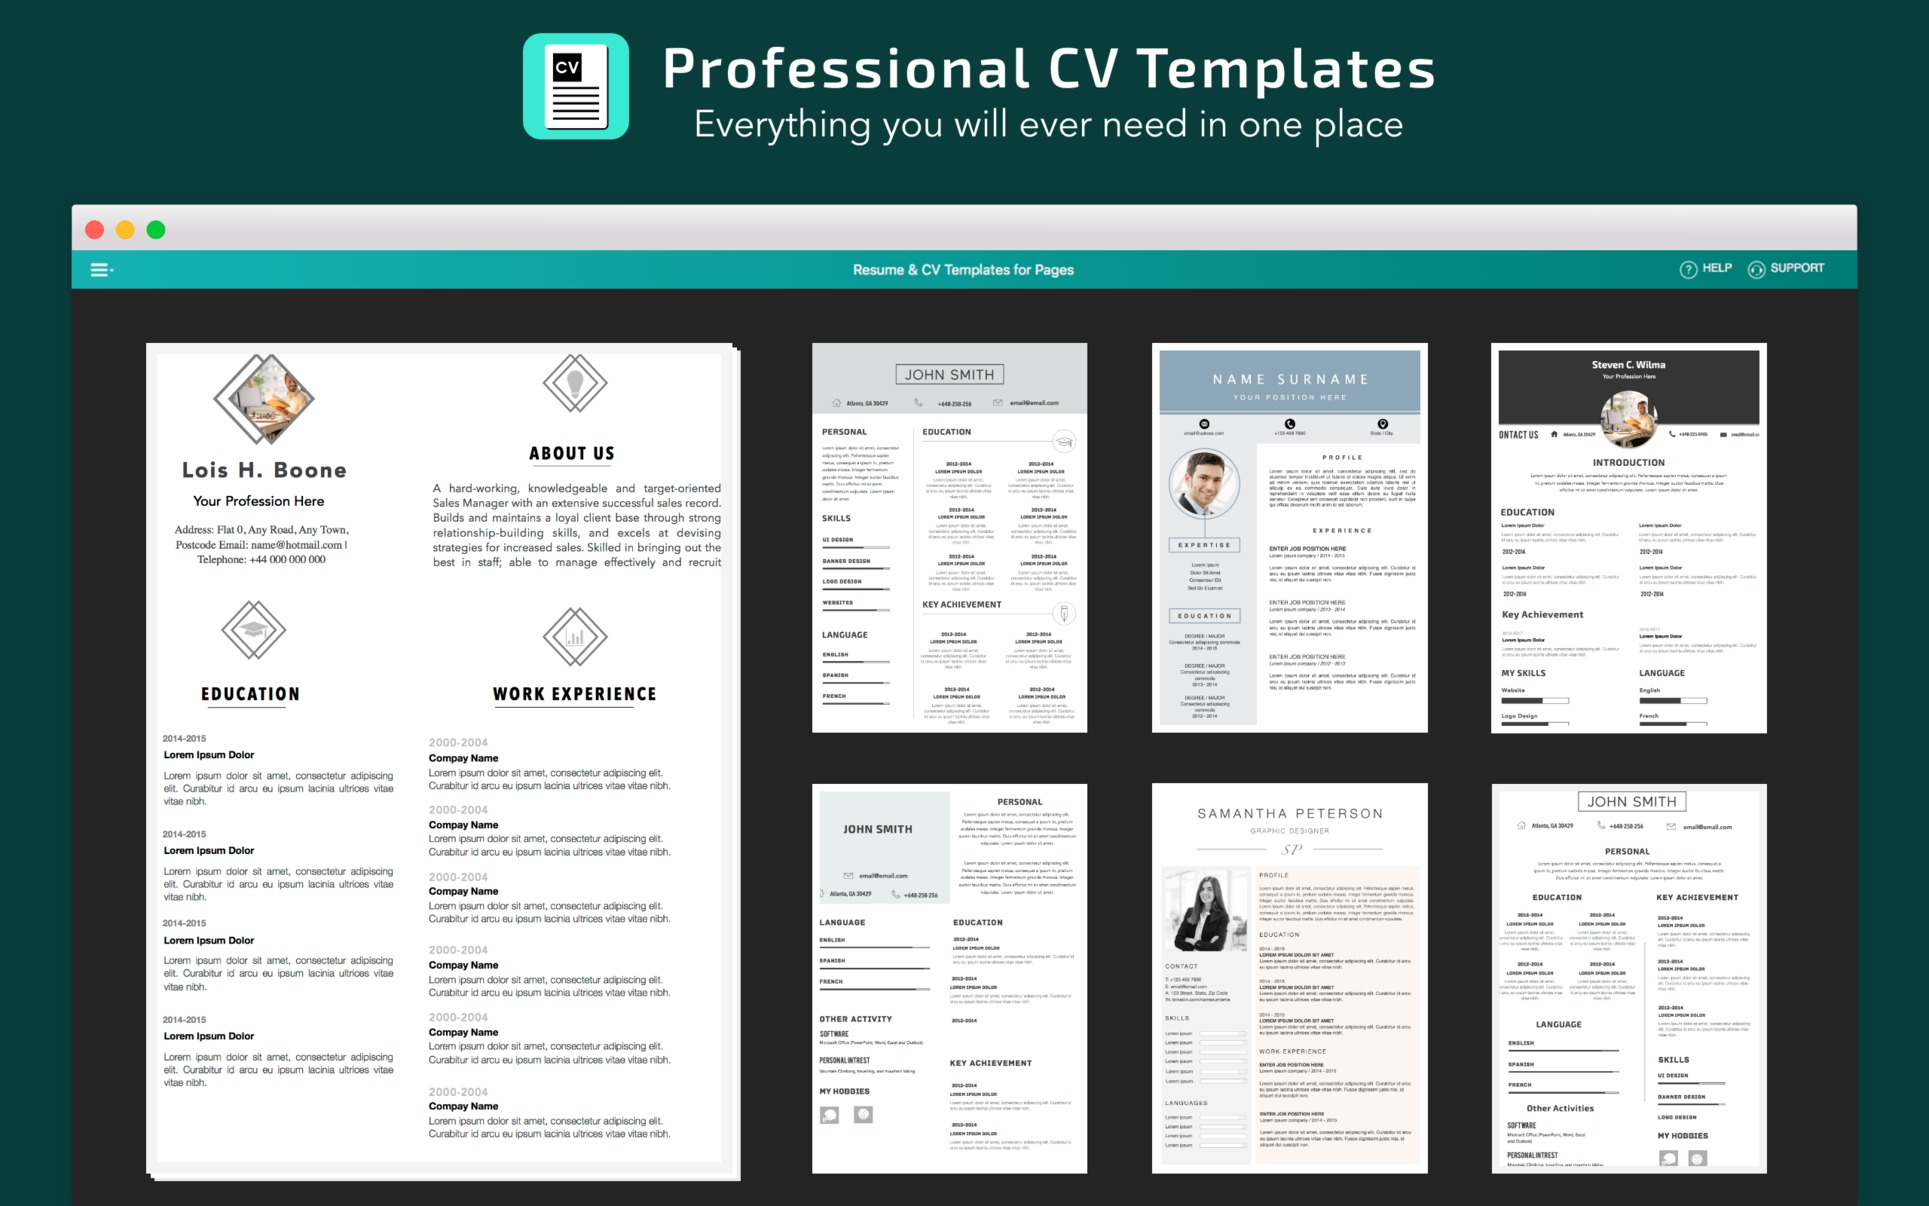 Resume Templates For Mac Pages Resume Cv Templates For Pages 4 Purchase For Mac